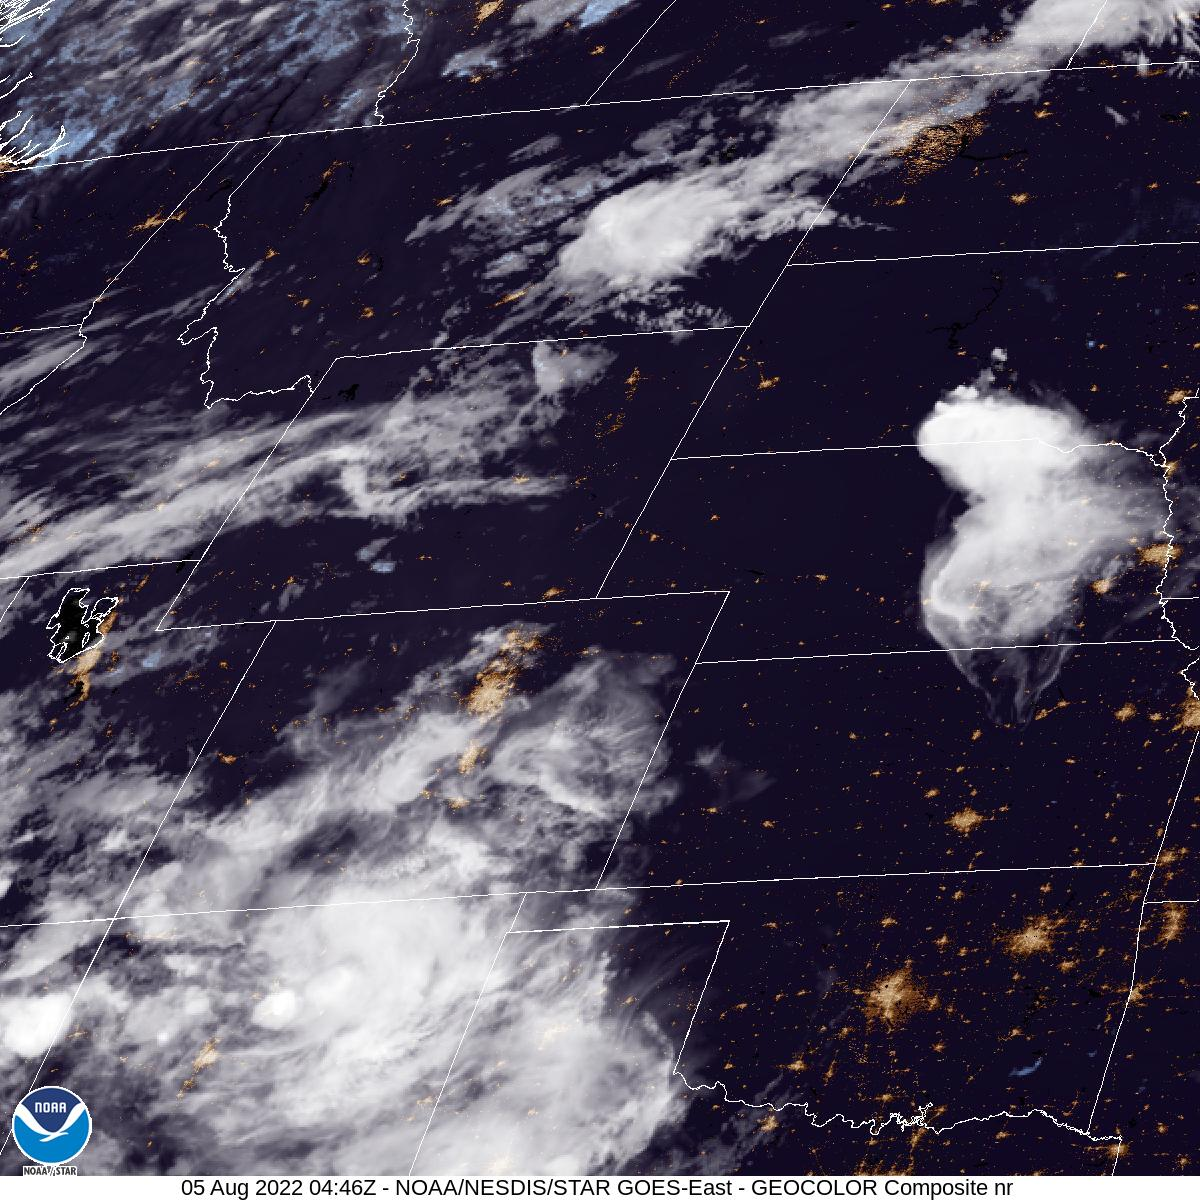 Latest GOES-16 Geocolor Image of Northern Rockies sector